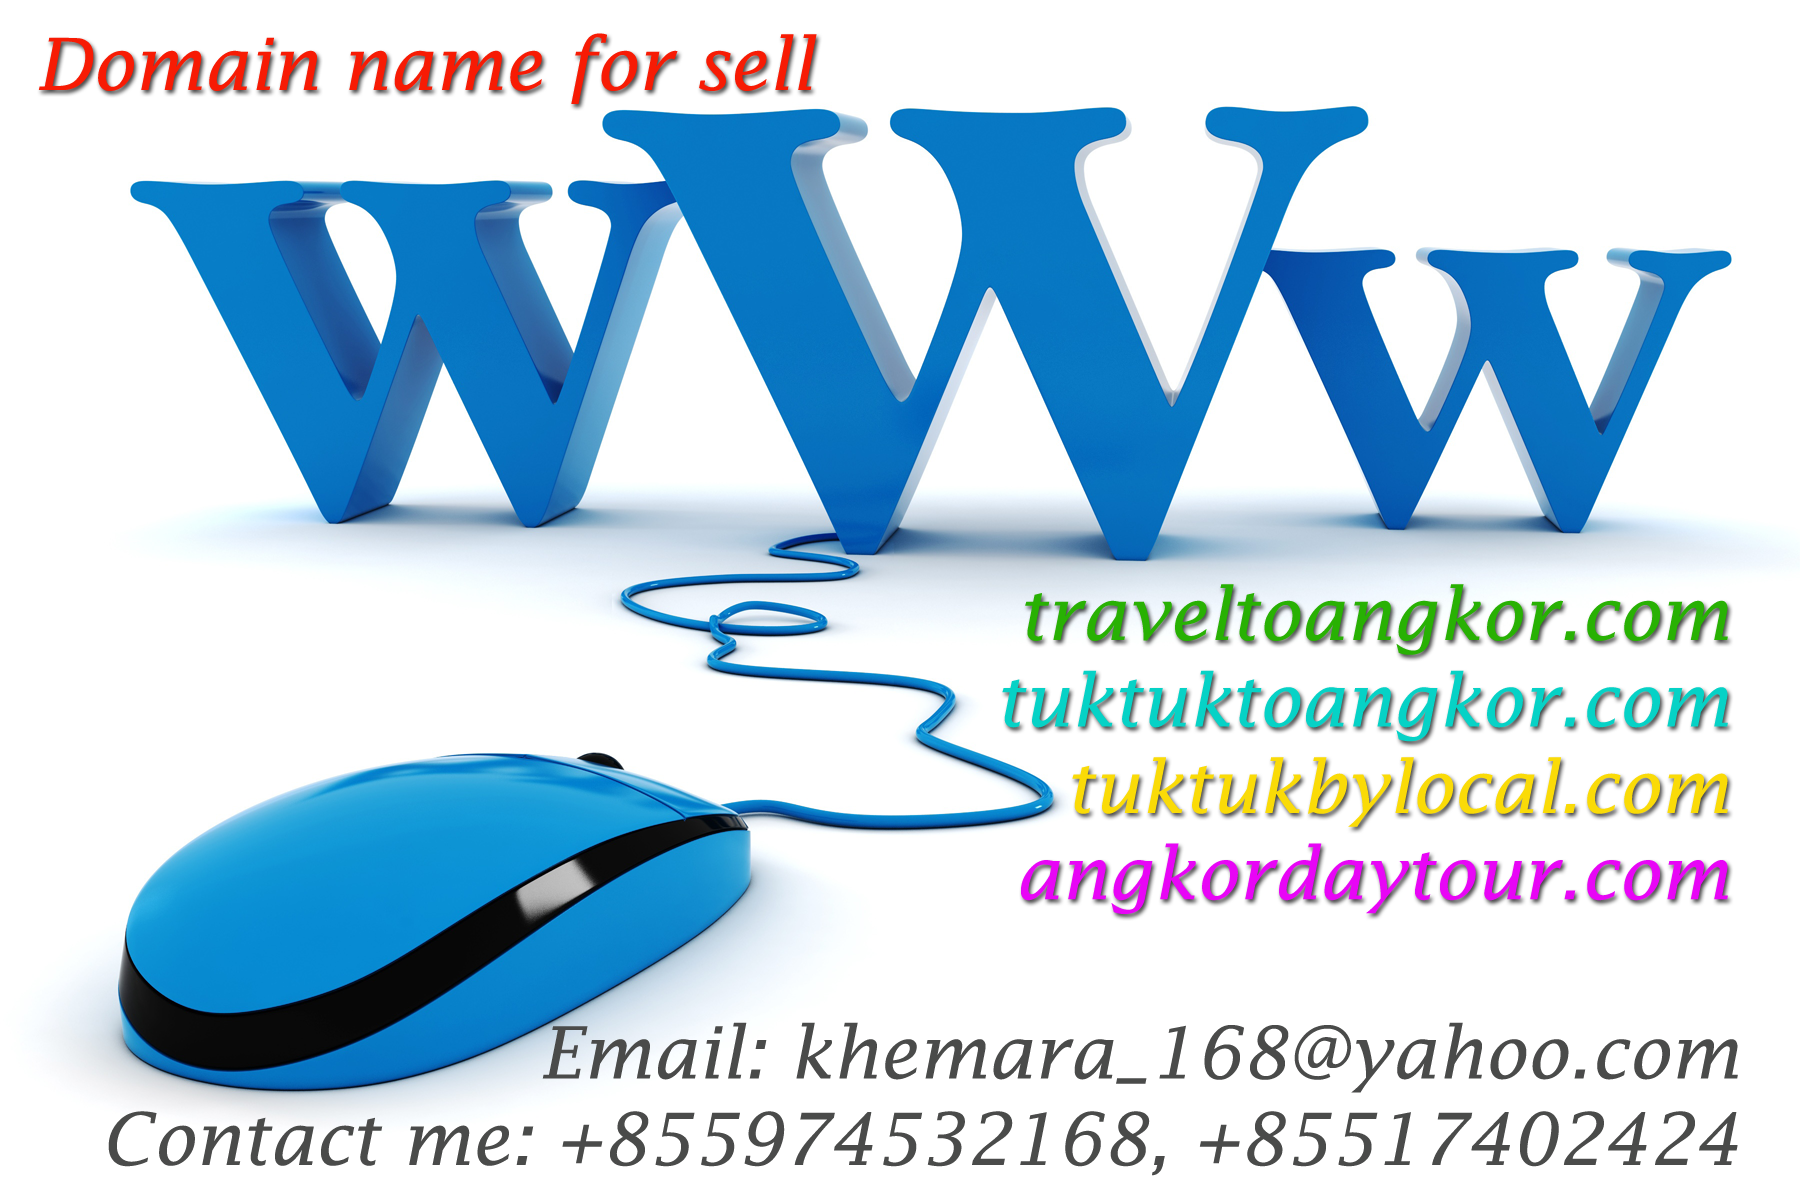 Domain name for sell